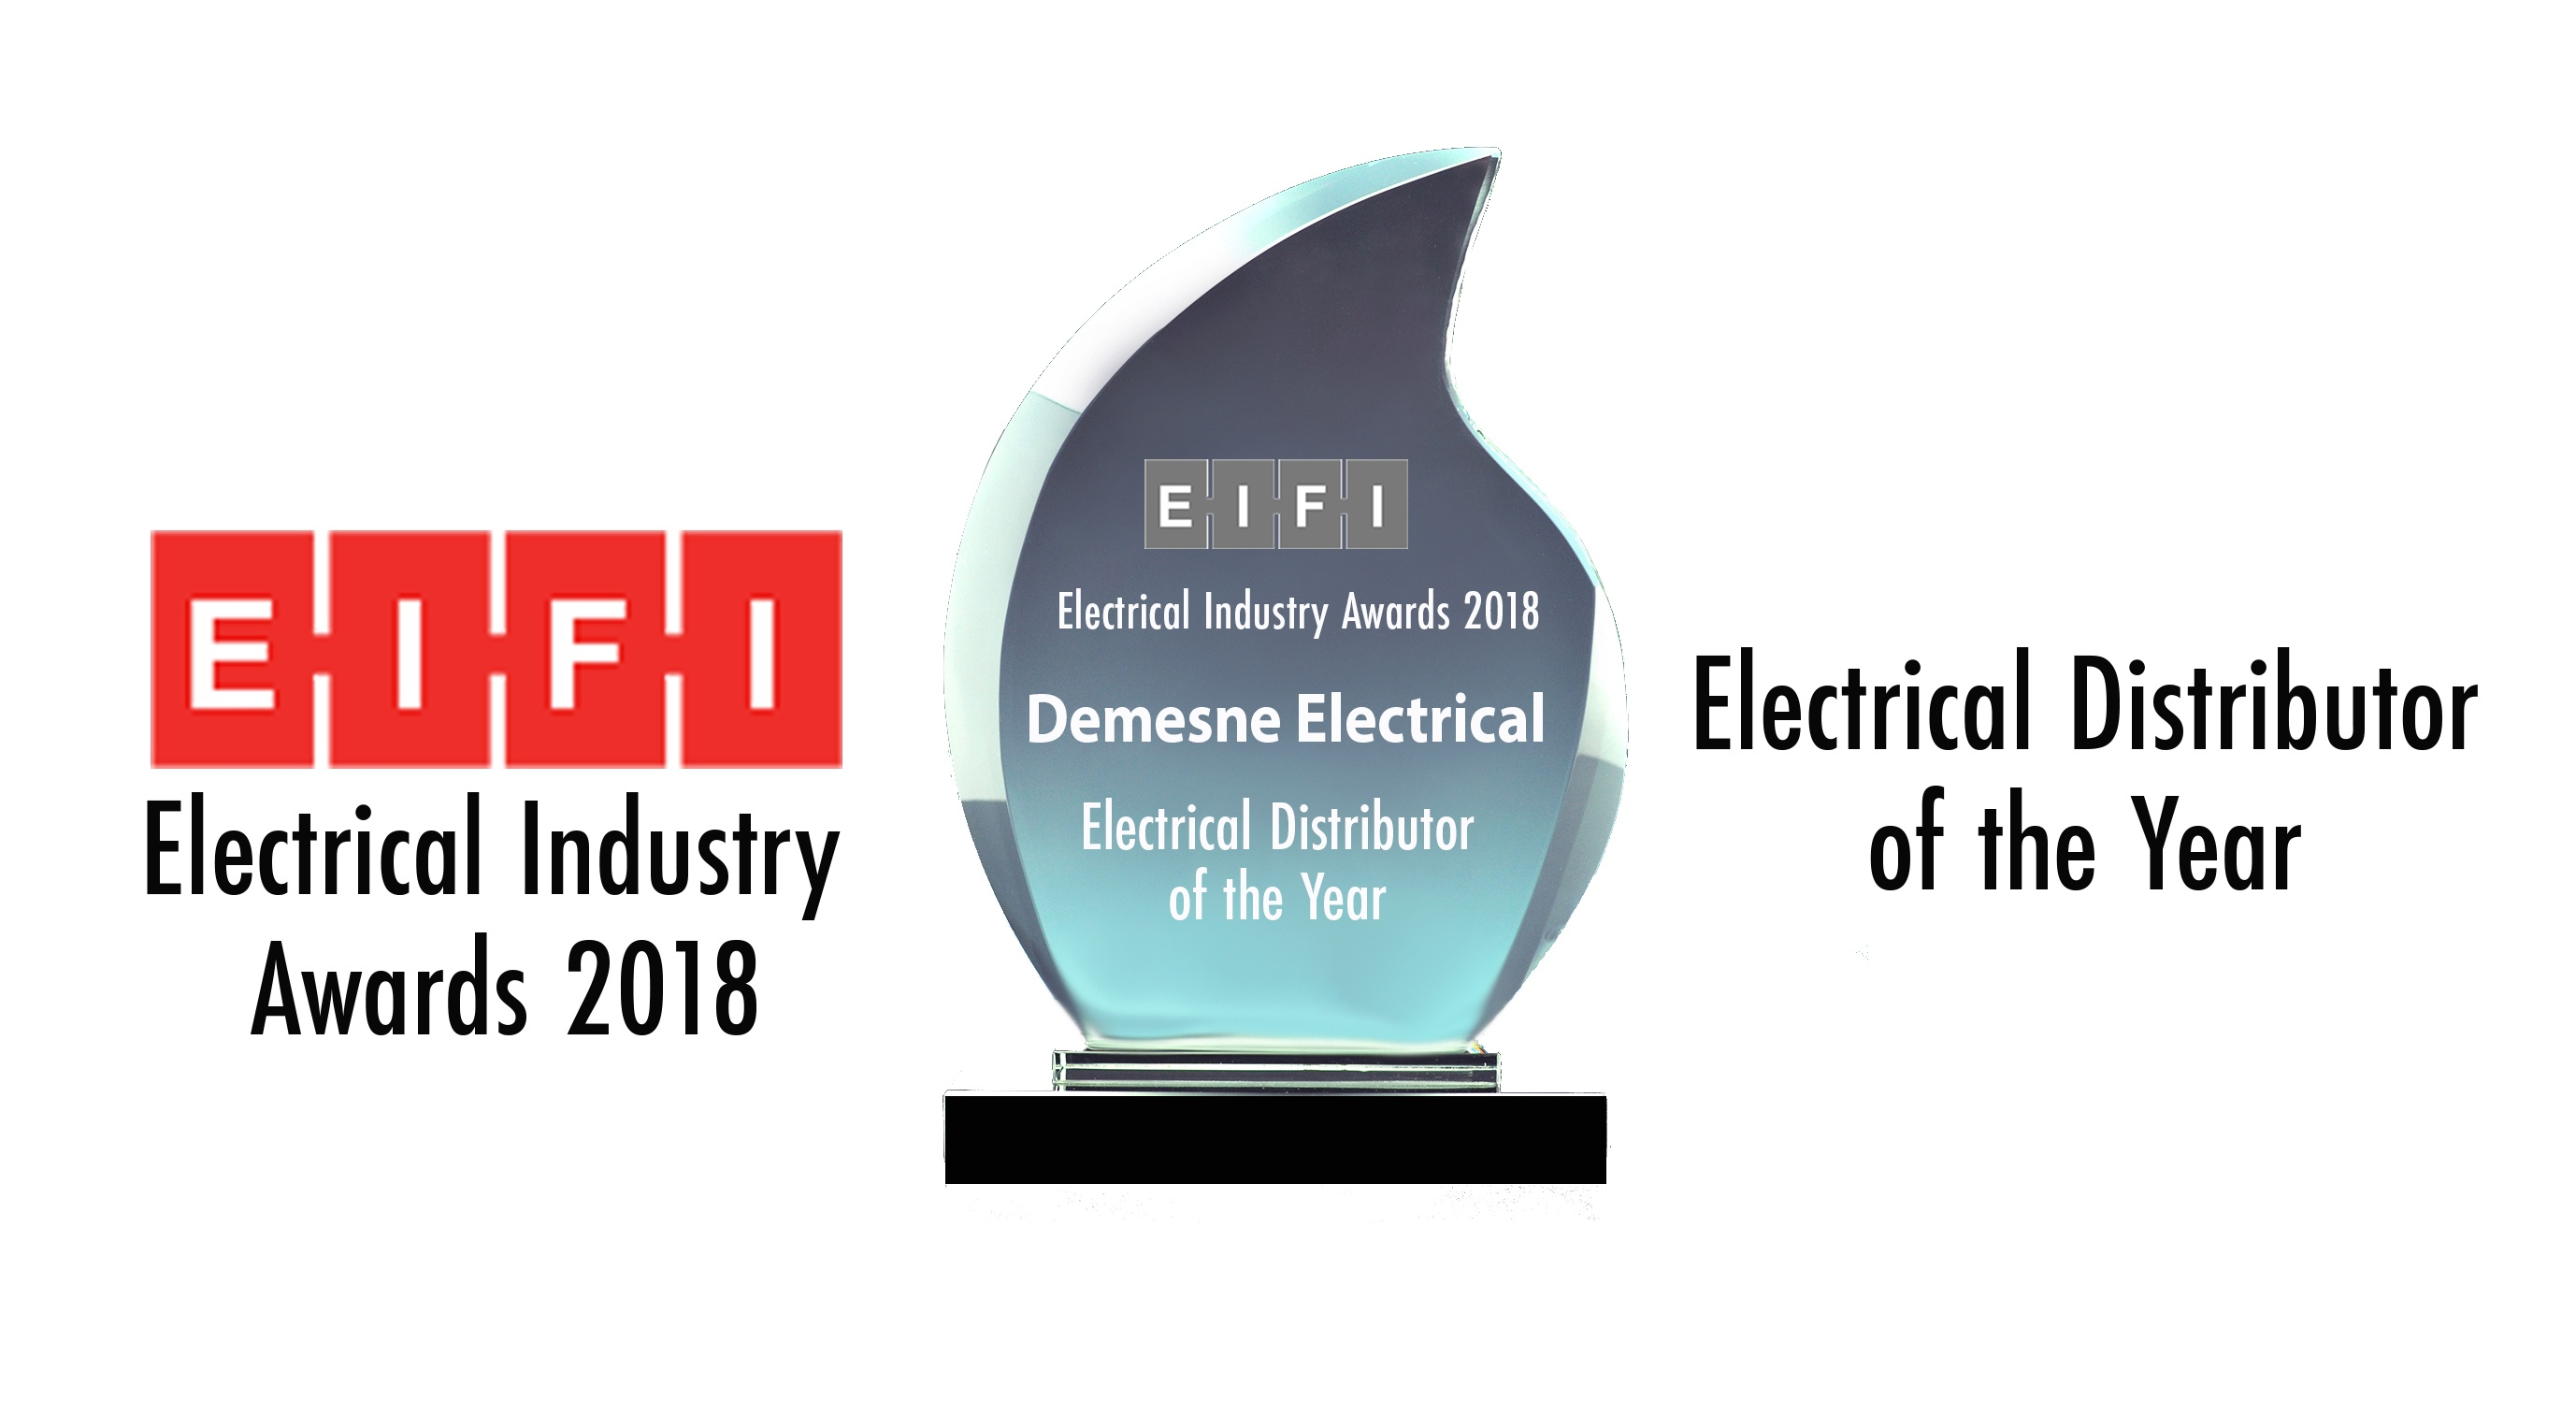 DemesneElectrical